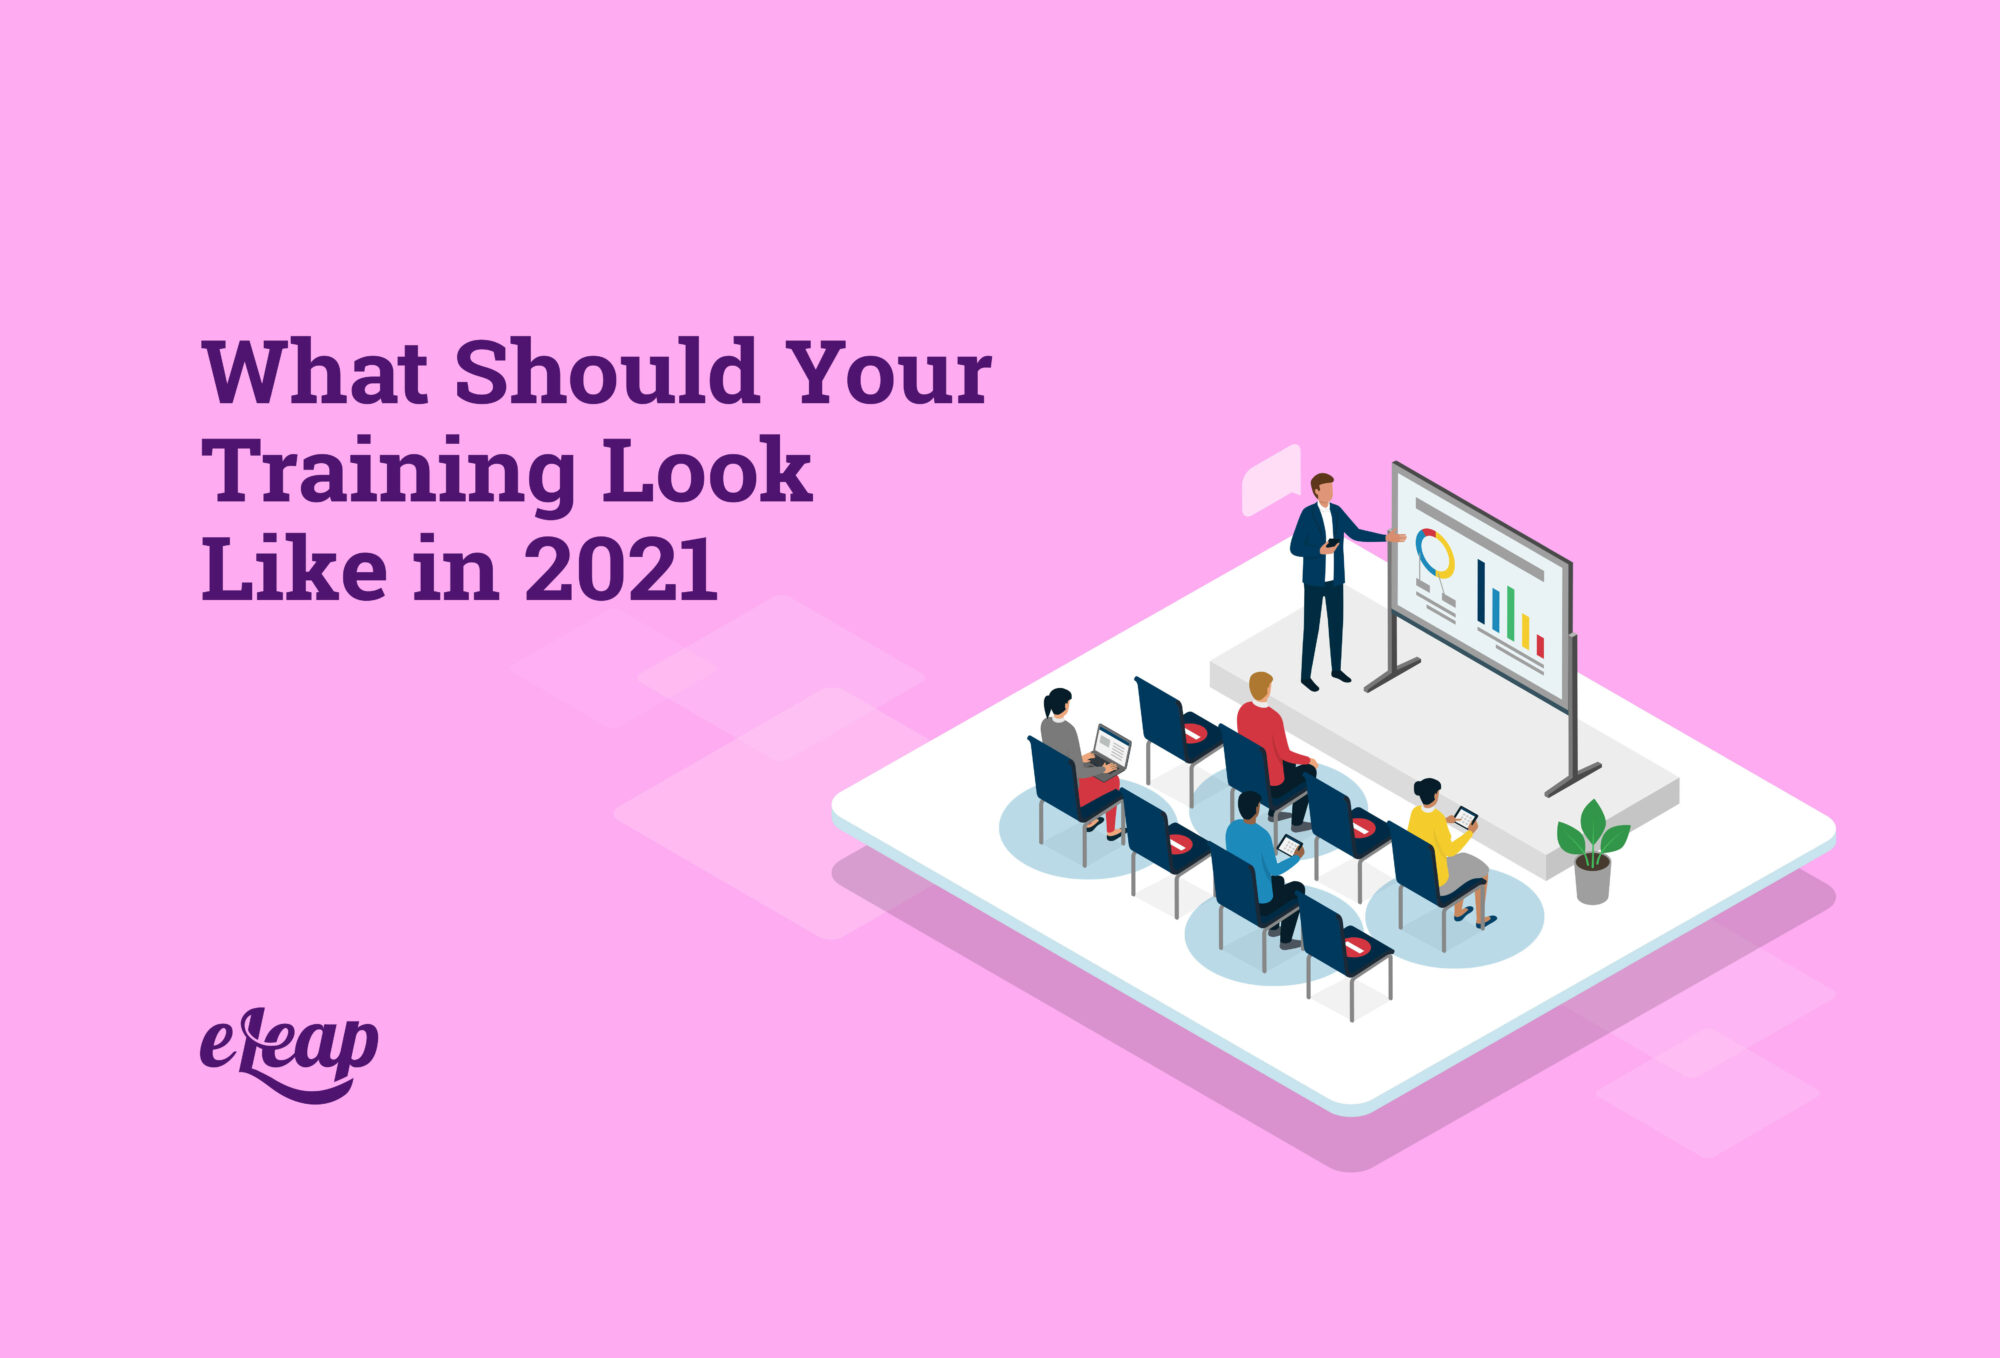 What Should Your Training Look Like in 2021